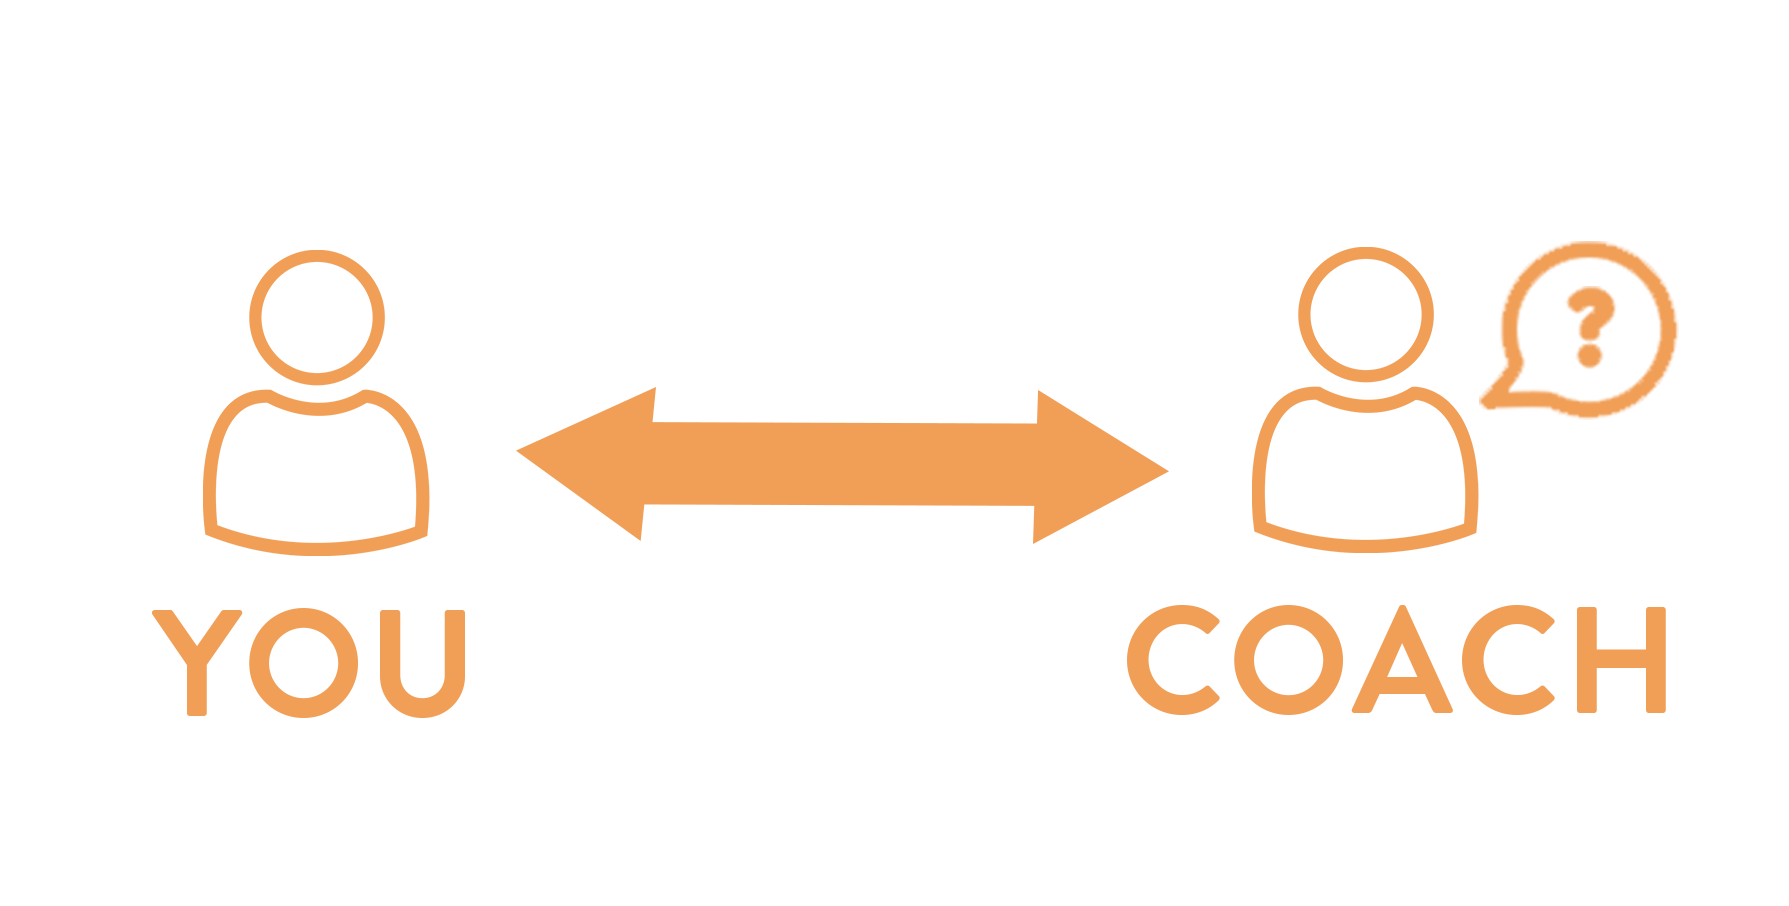 Diagram showing how you and a coach are connected.